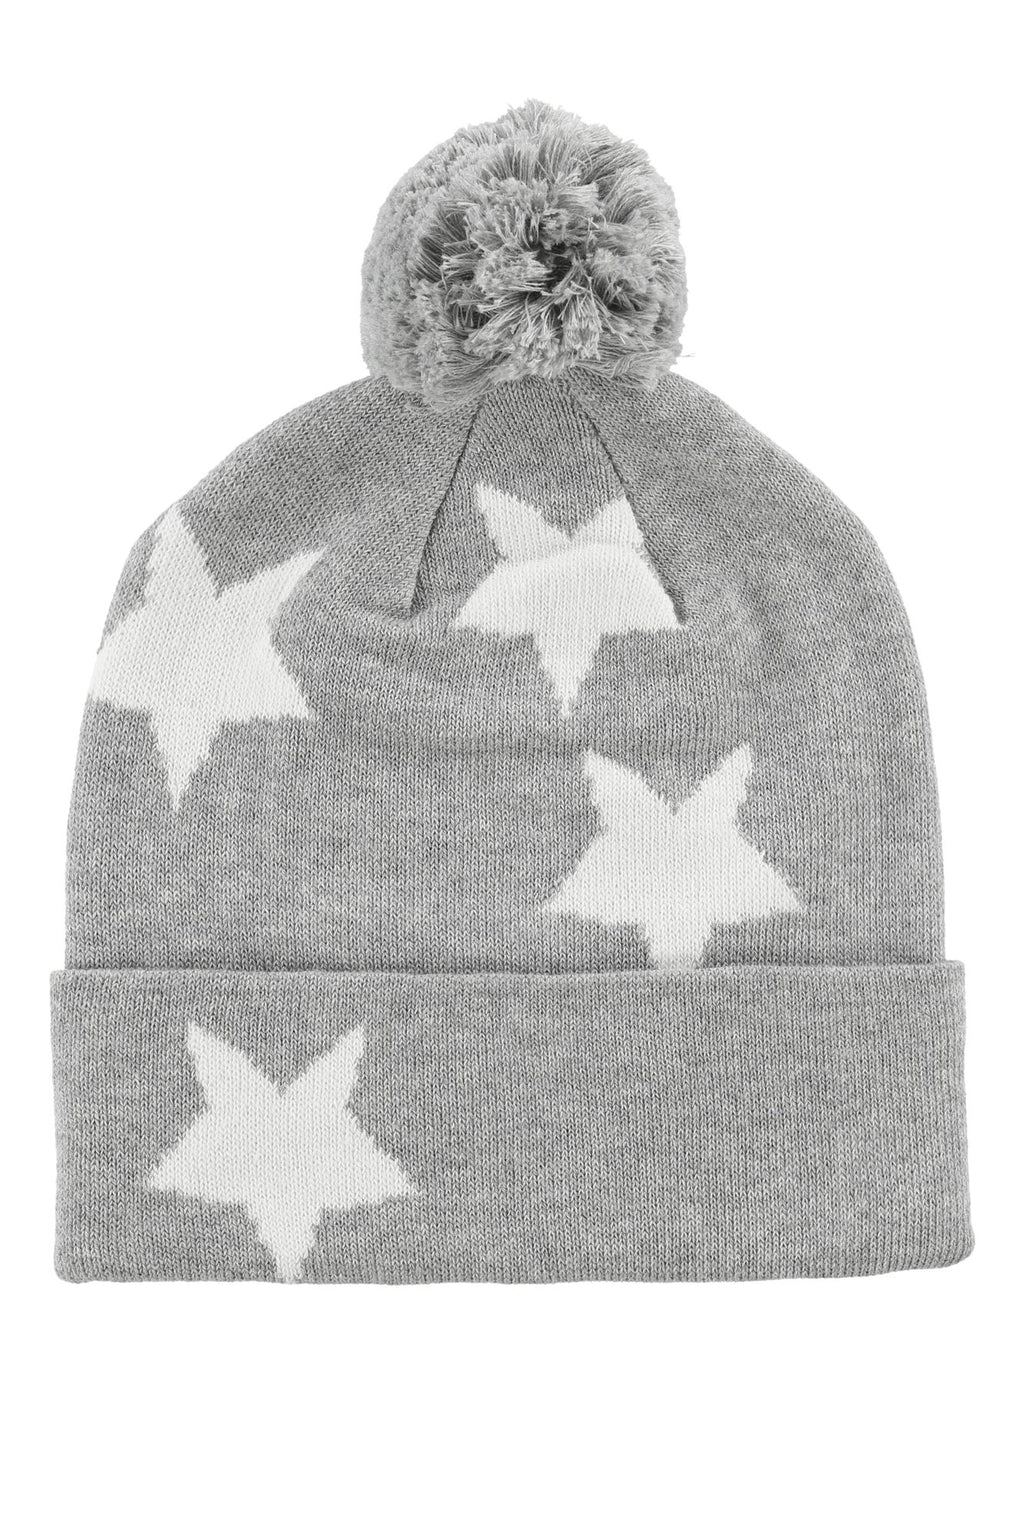 SG - Stars Grey Toque